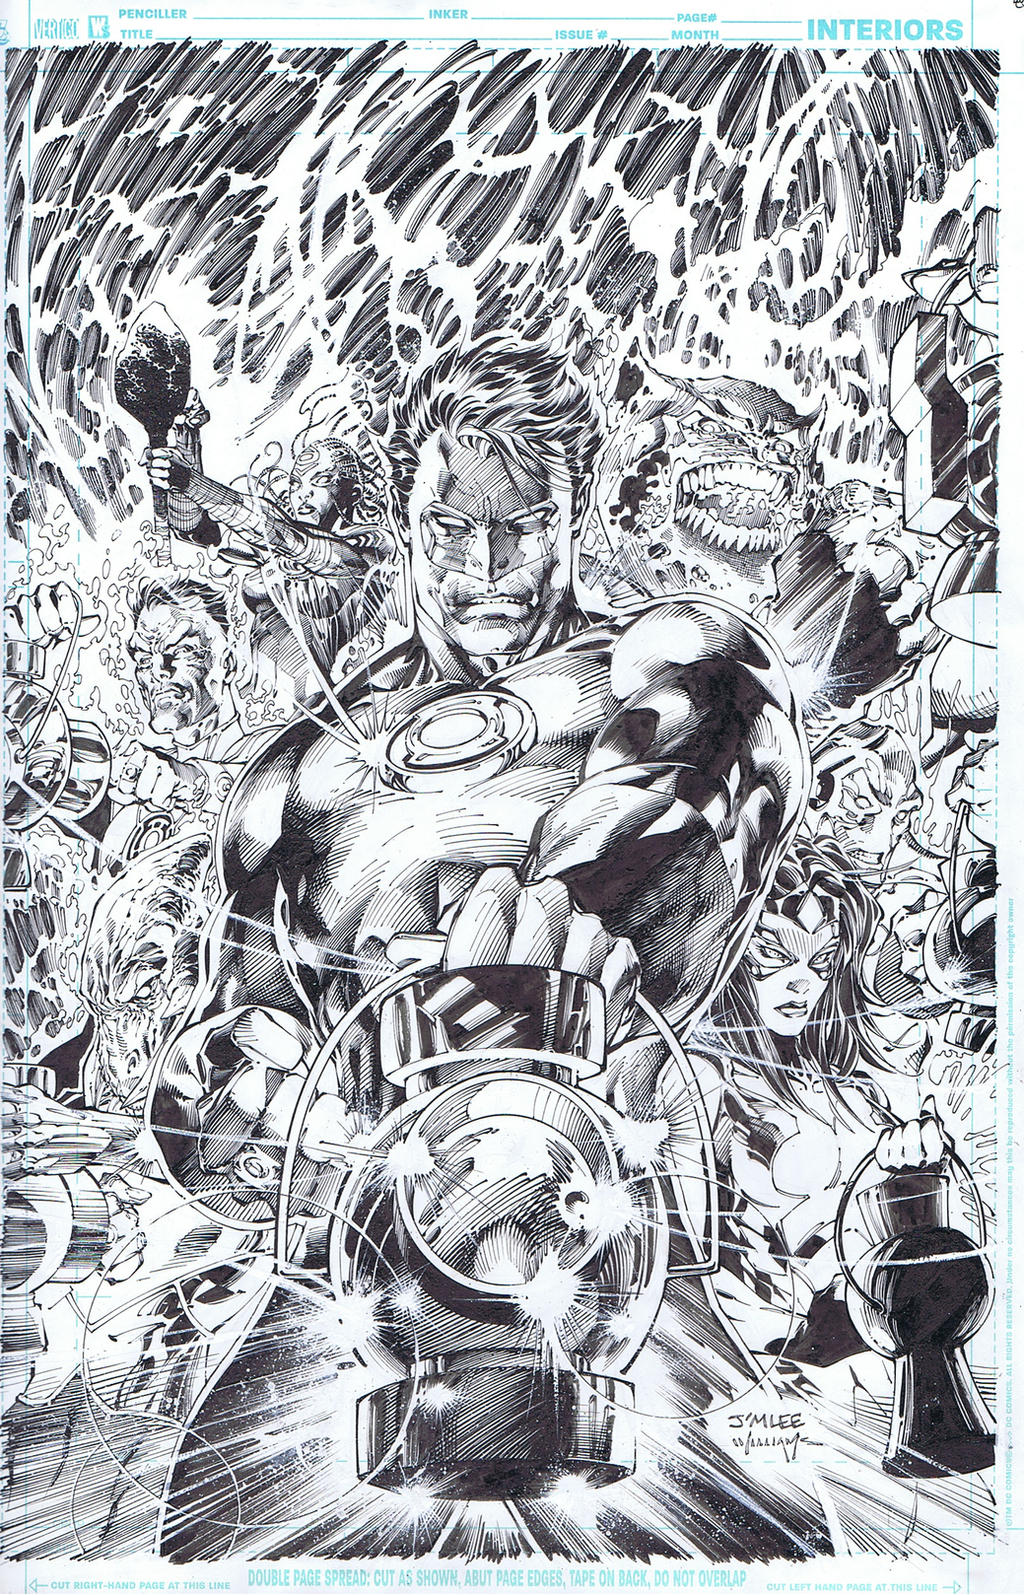 Green Lantern 50 cover by INKIST